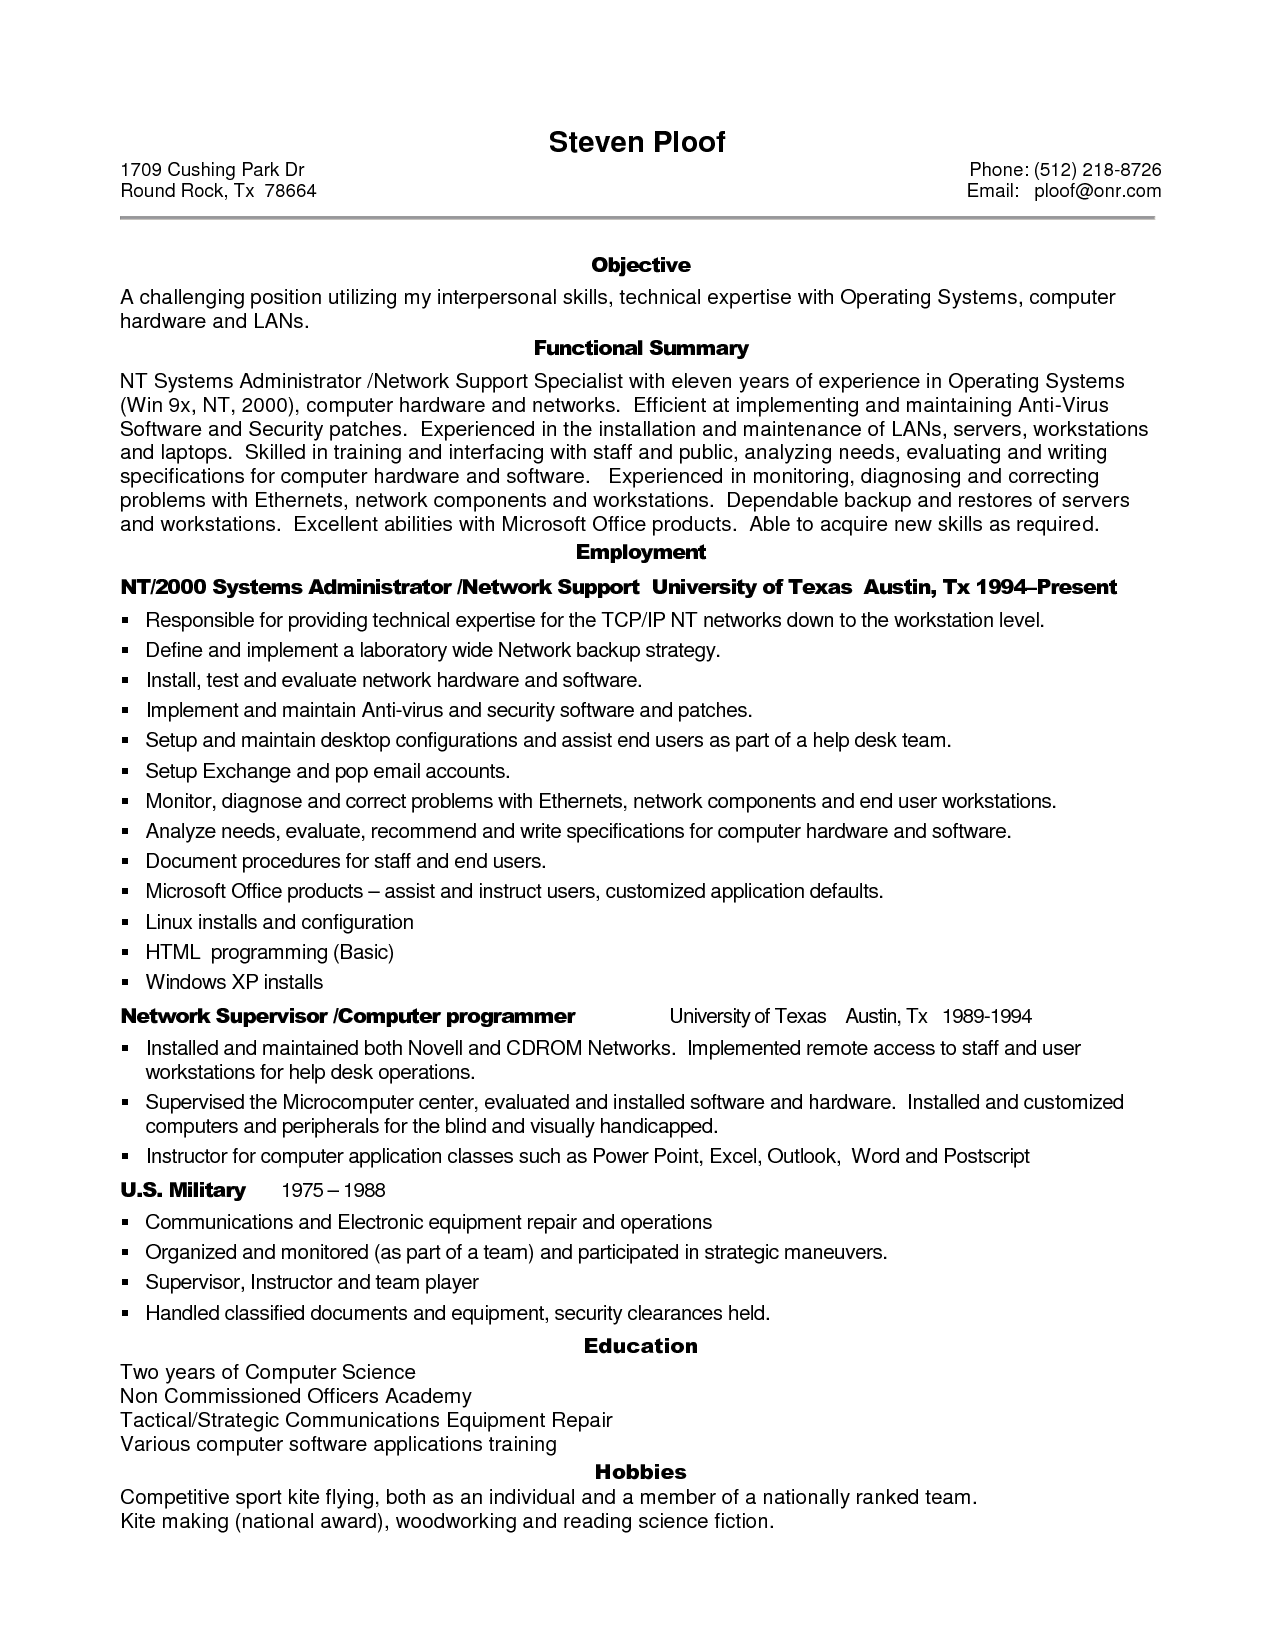 Sample Resume For Experienced It Professional Sample Resume For Experienced  It Professional, Resume Tips For  What Should A Professional Resume Look Like